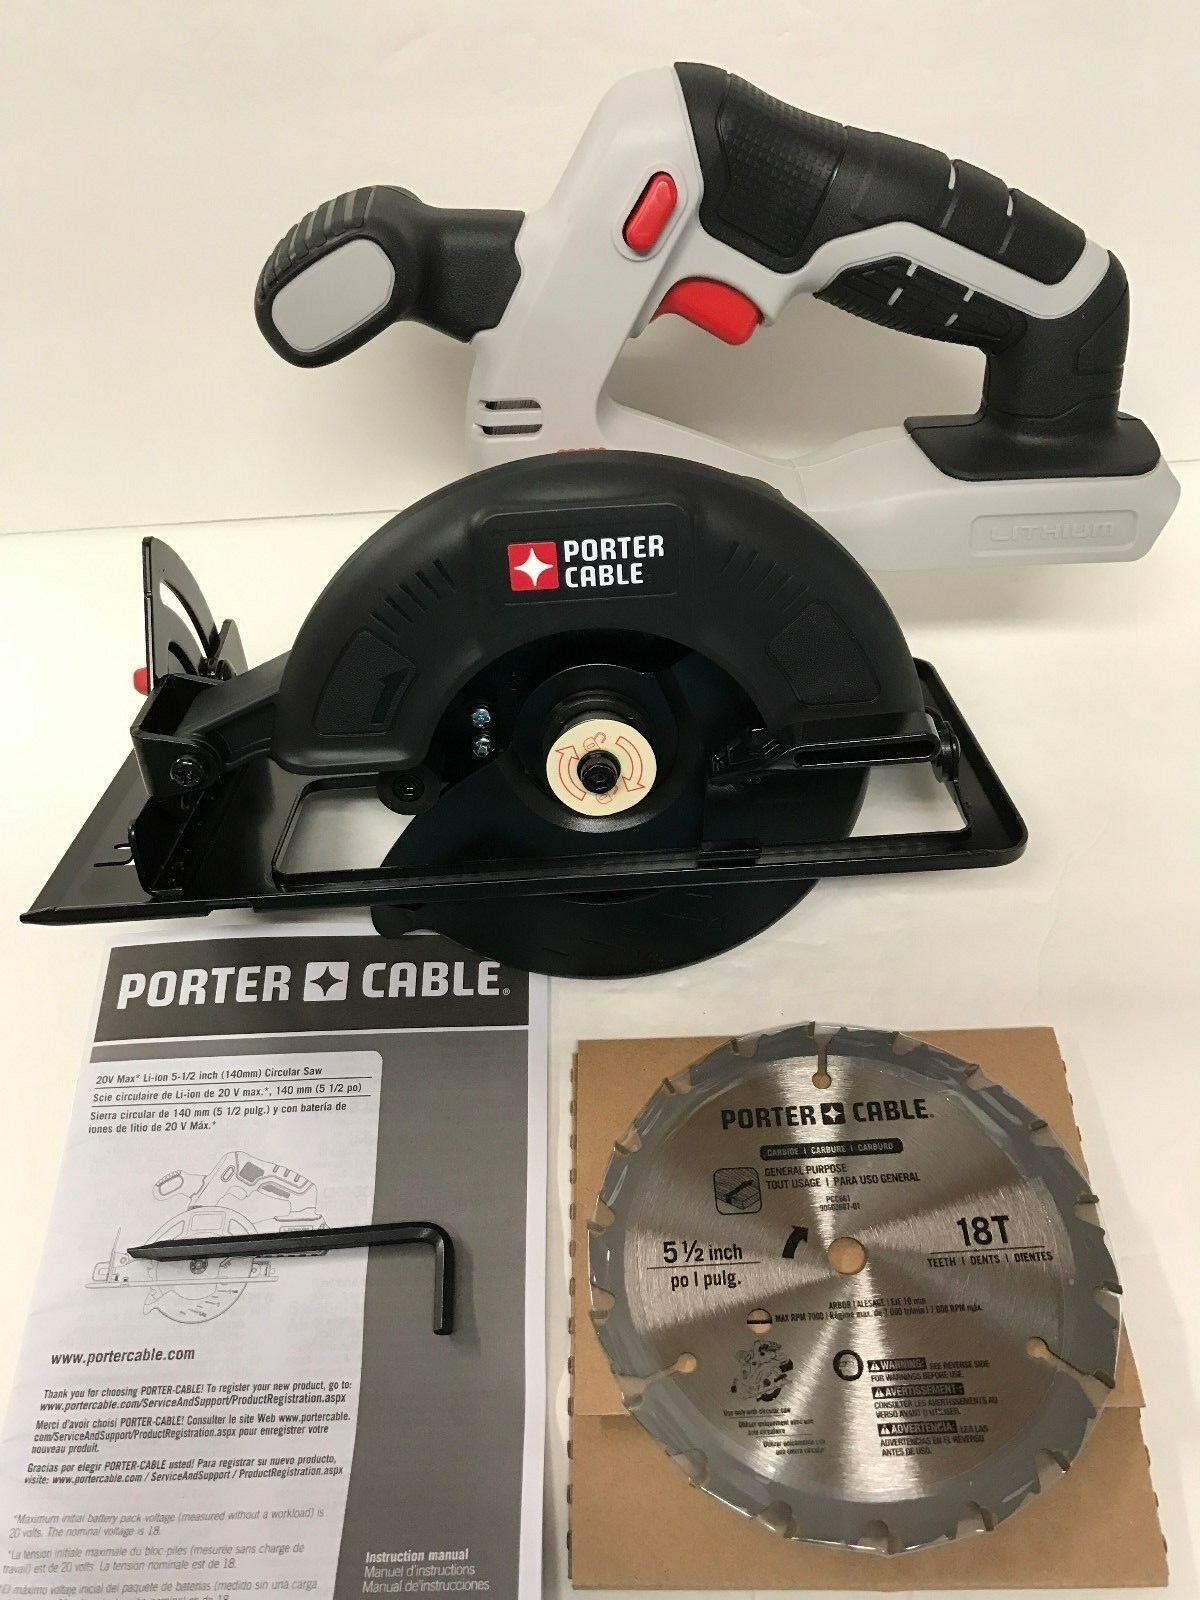 Porter cable pcc661b 20v lithium bare tool 5 12 inch circular saw resntentobalflowflowcomponenttechnicalissues keyboard keysfo Image collections